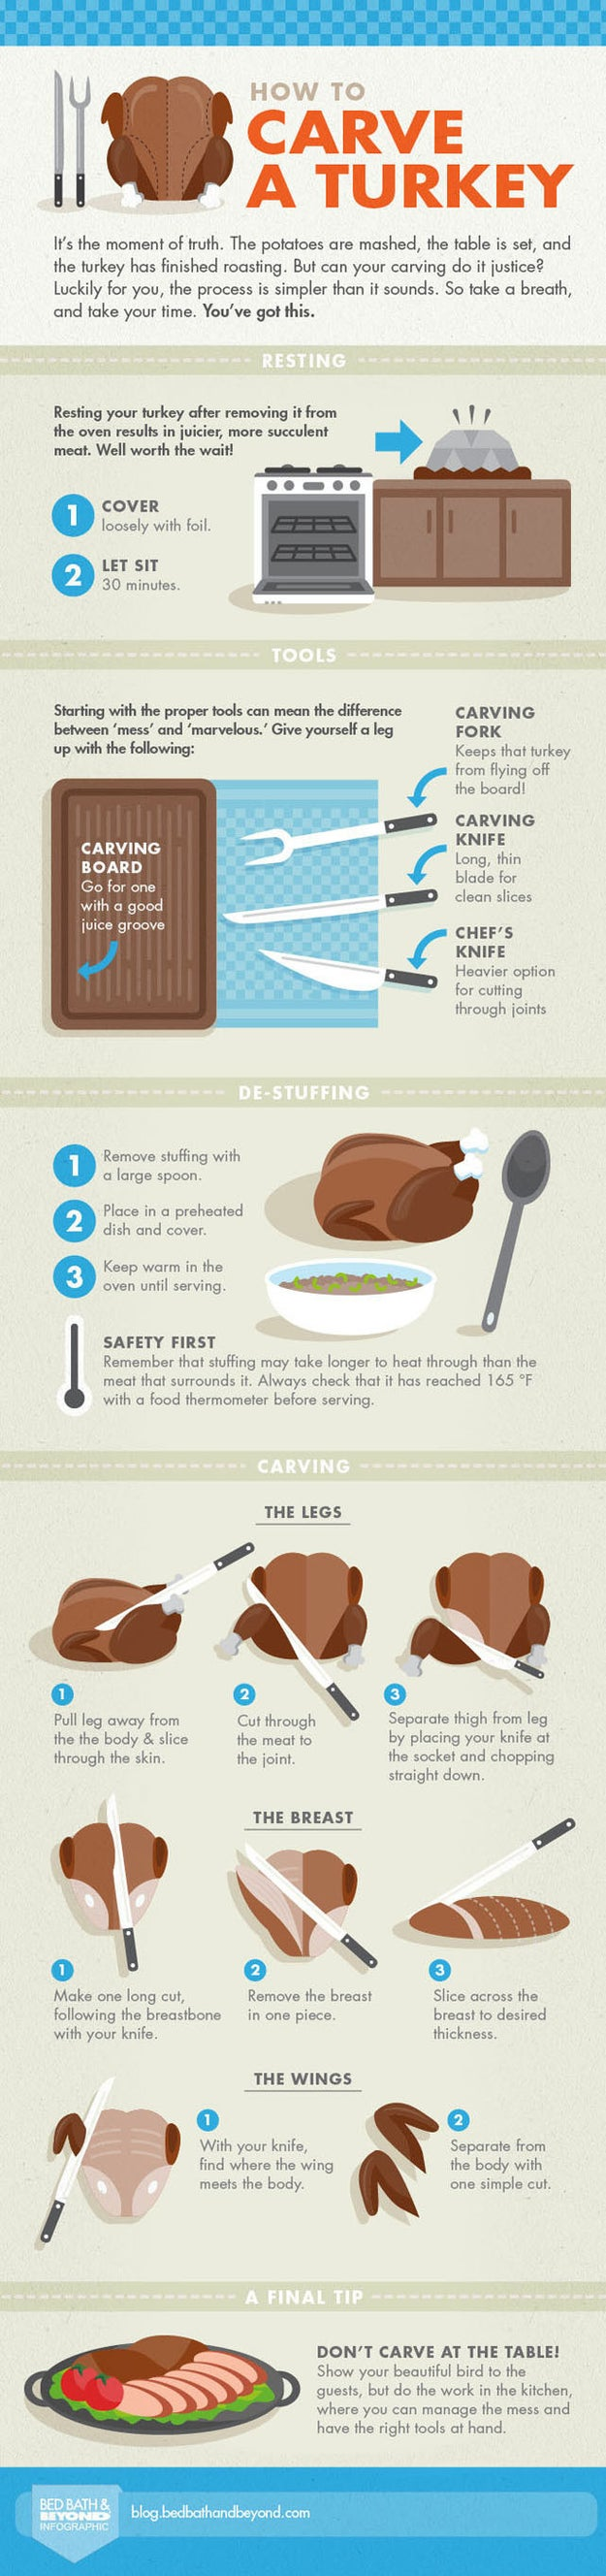 When your turkey is done cooking, let it rest on the counter. Then, follow this guide to carve it so you get the most meat out of all of your work.